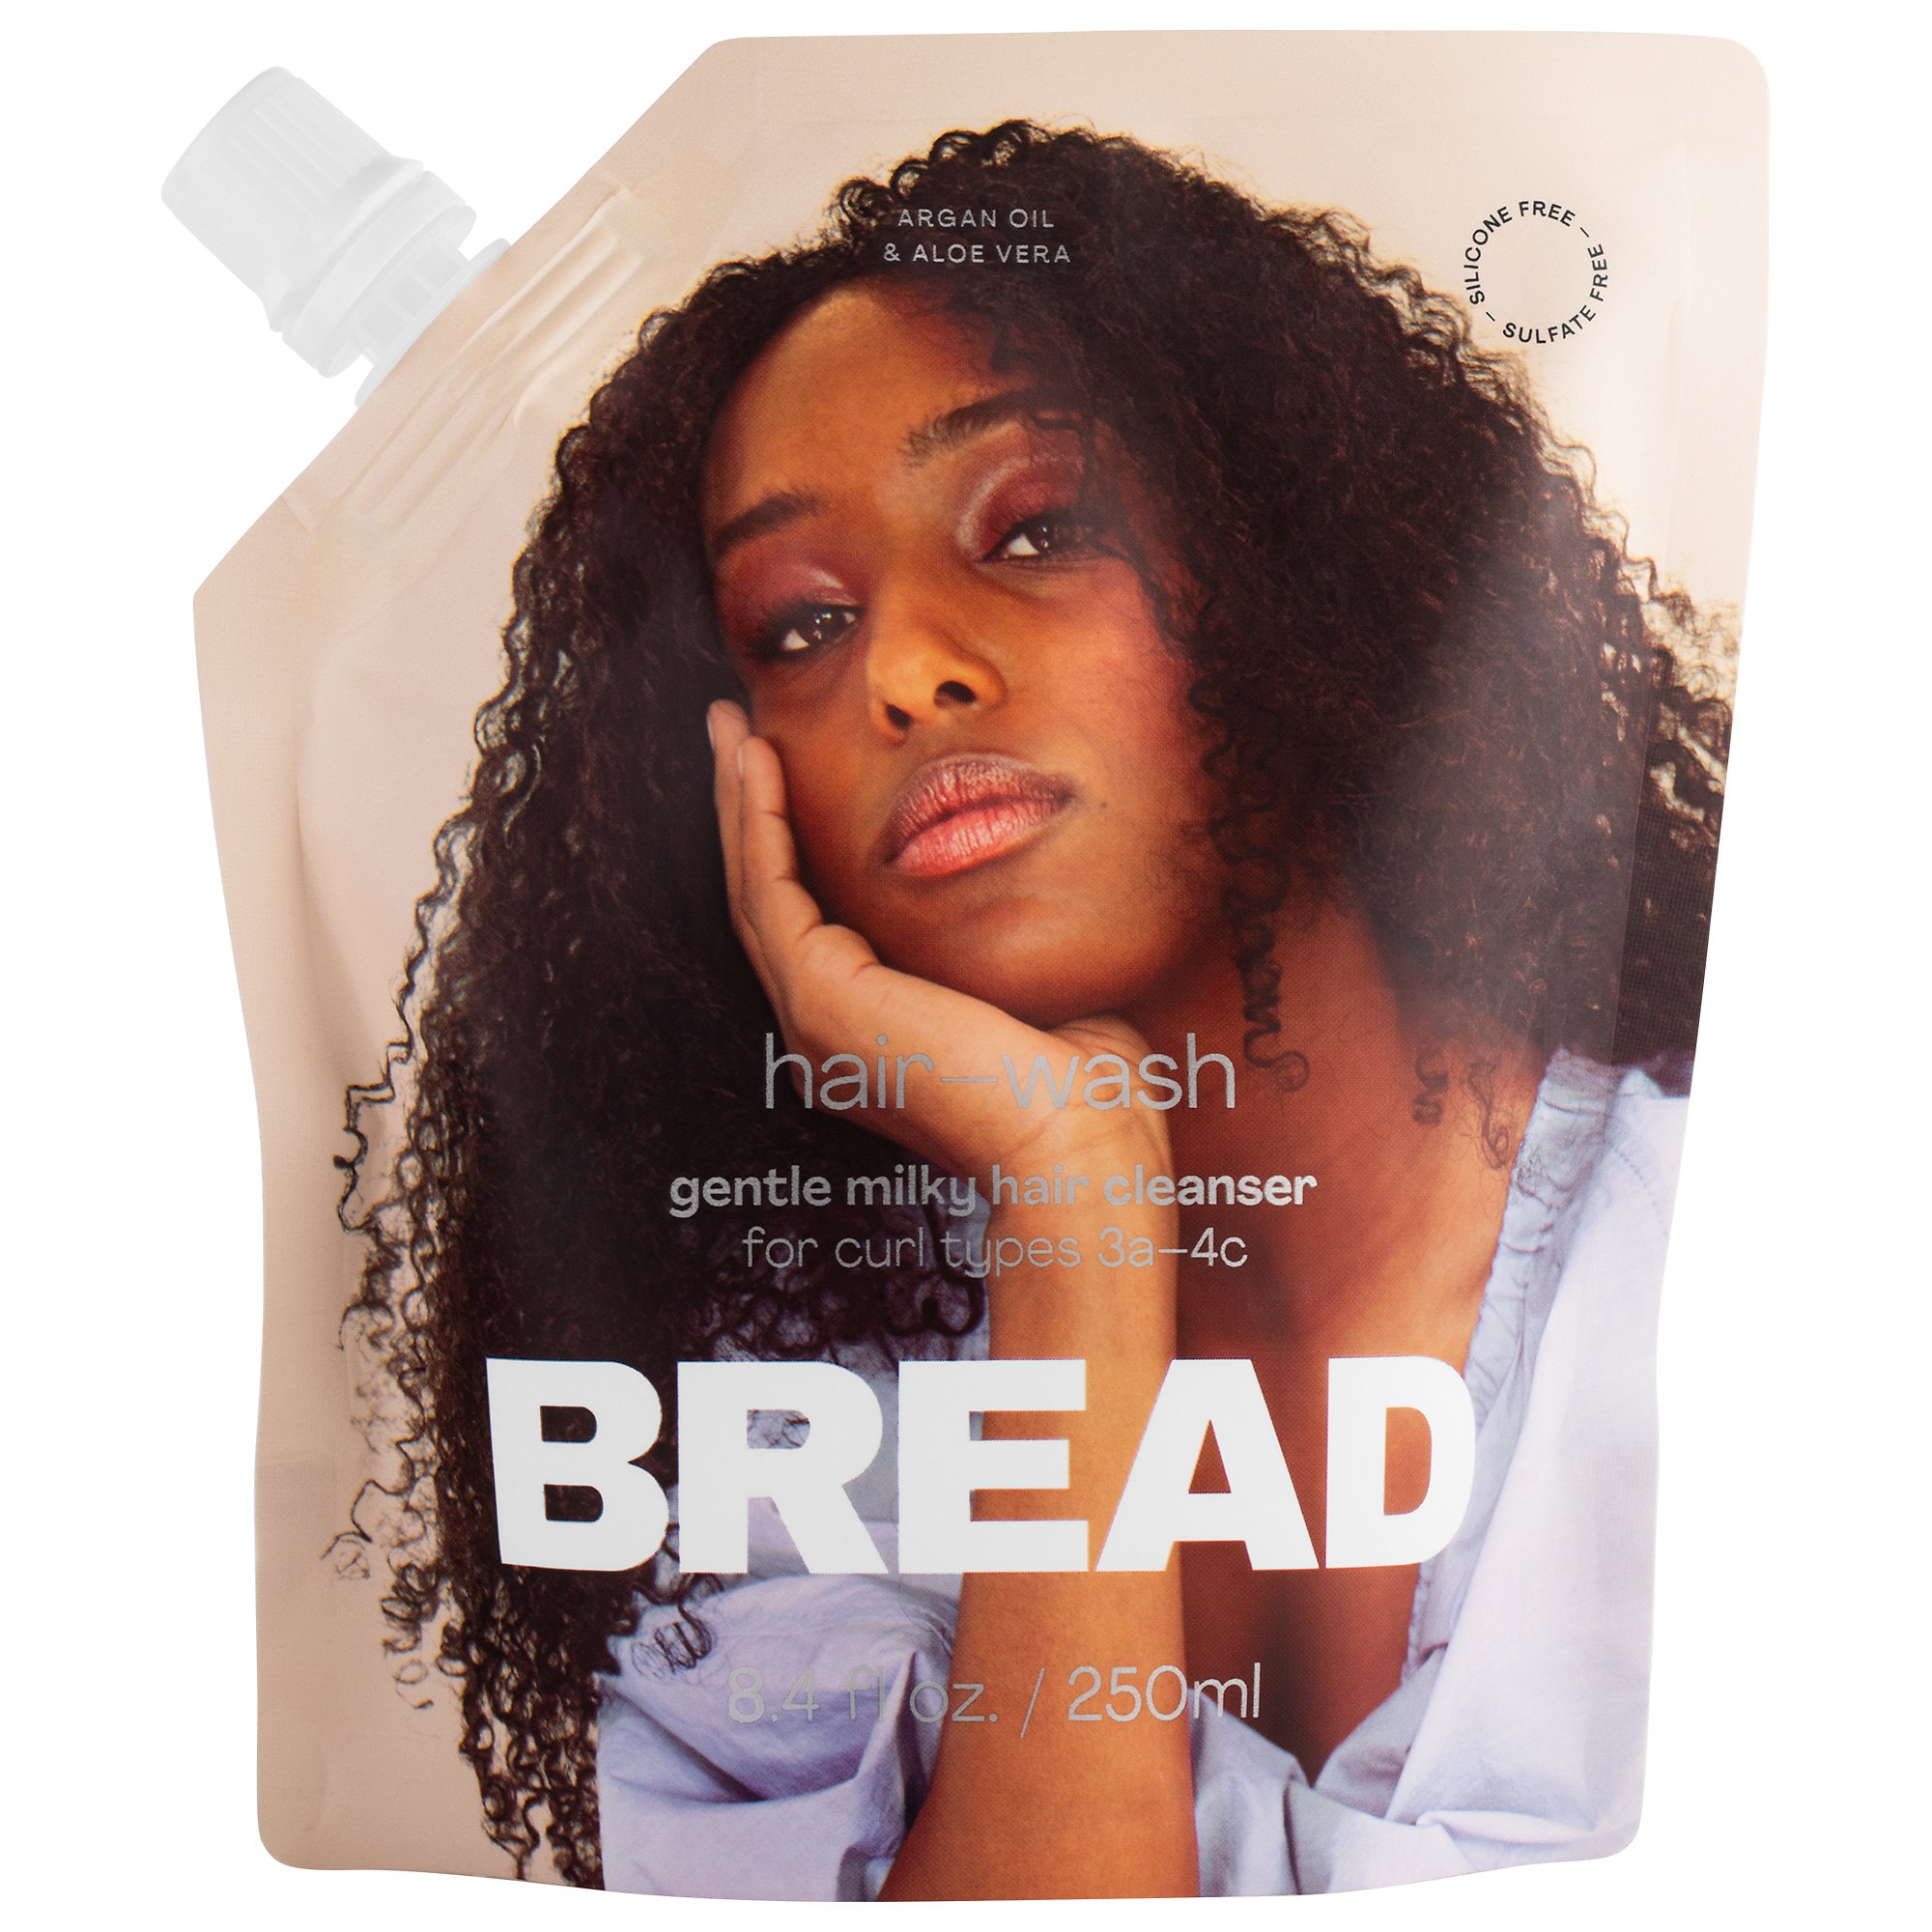 Bread Beauty Supply - Hair Wash Gentle Milky Hair Cleanser